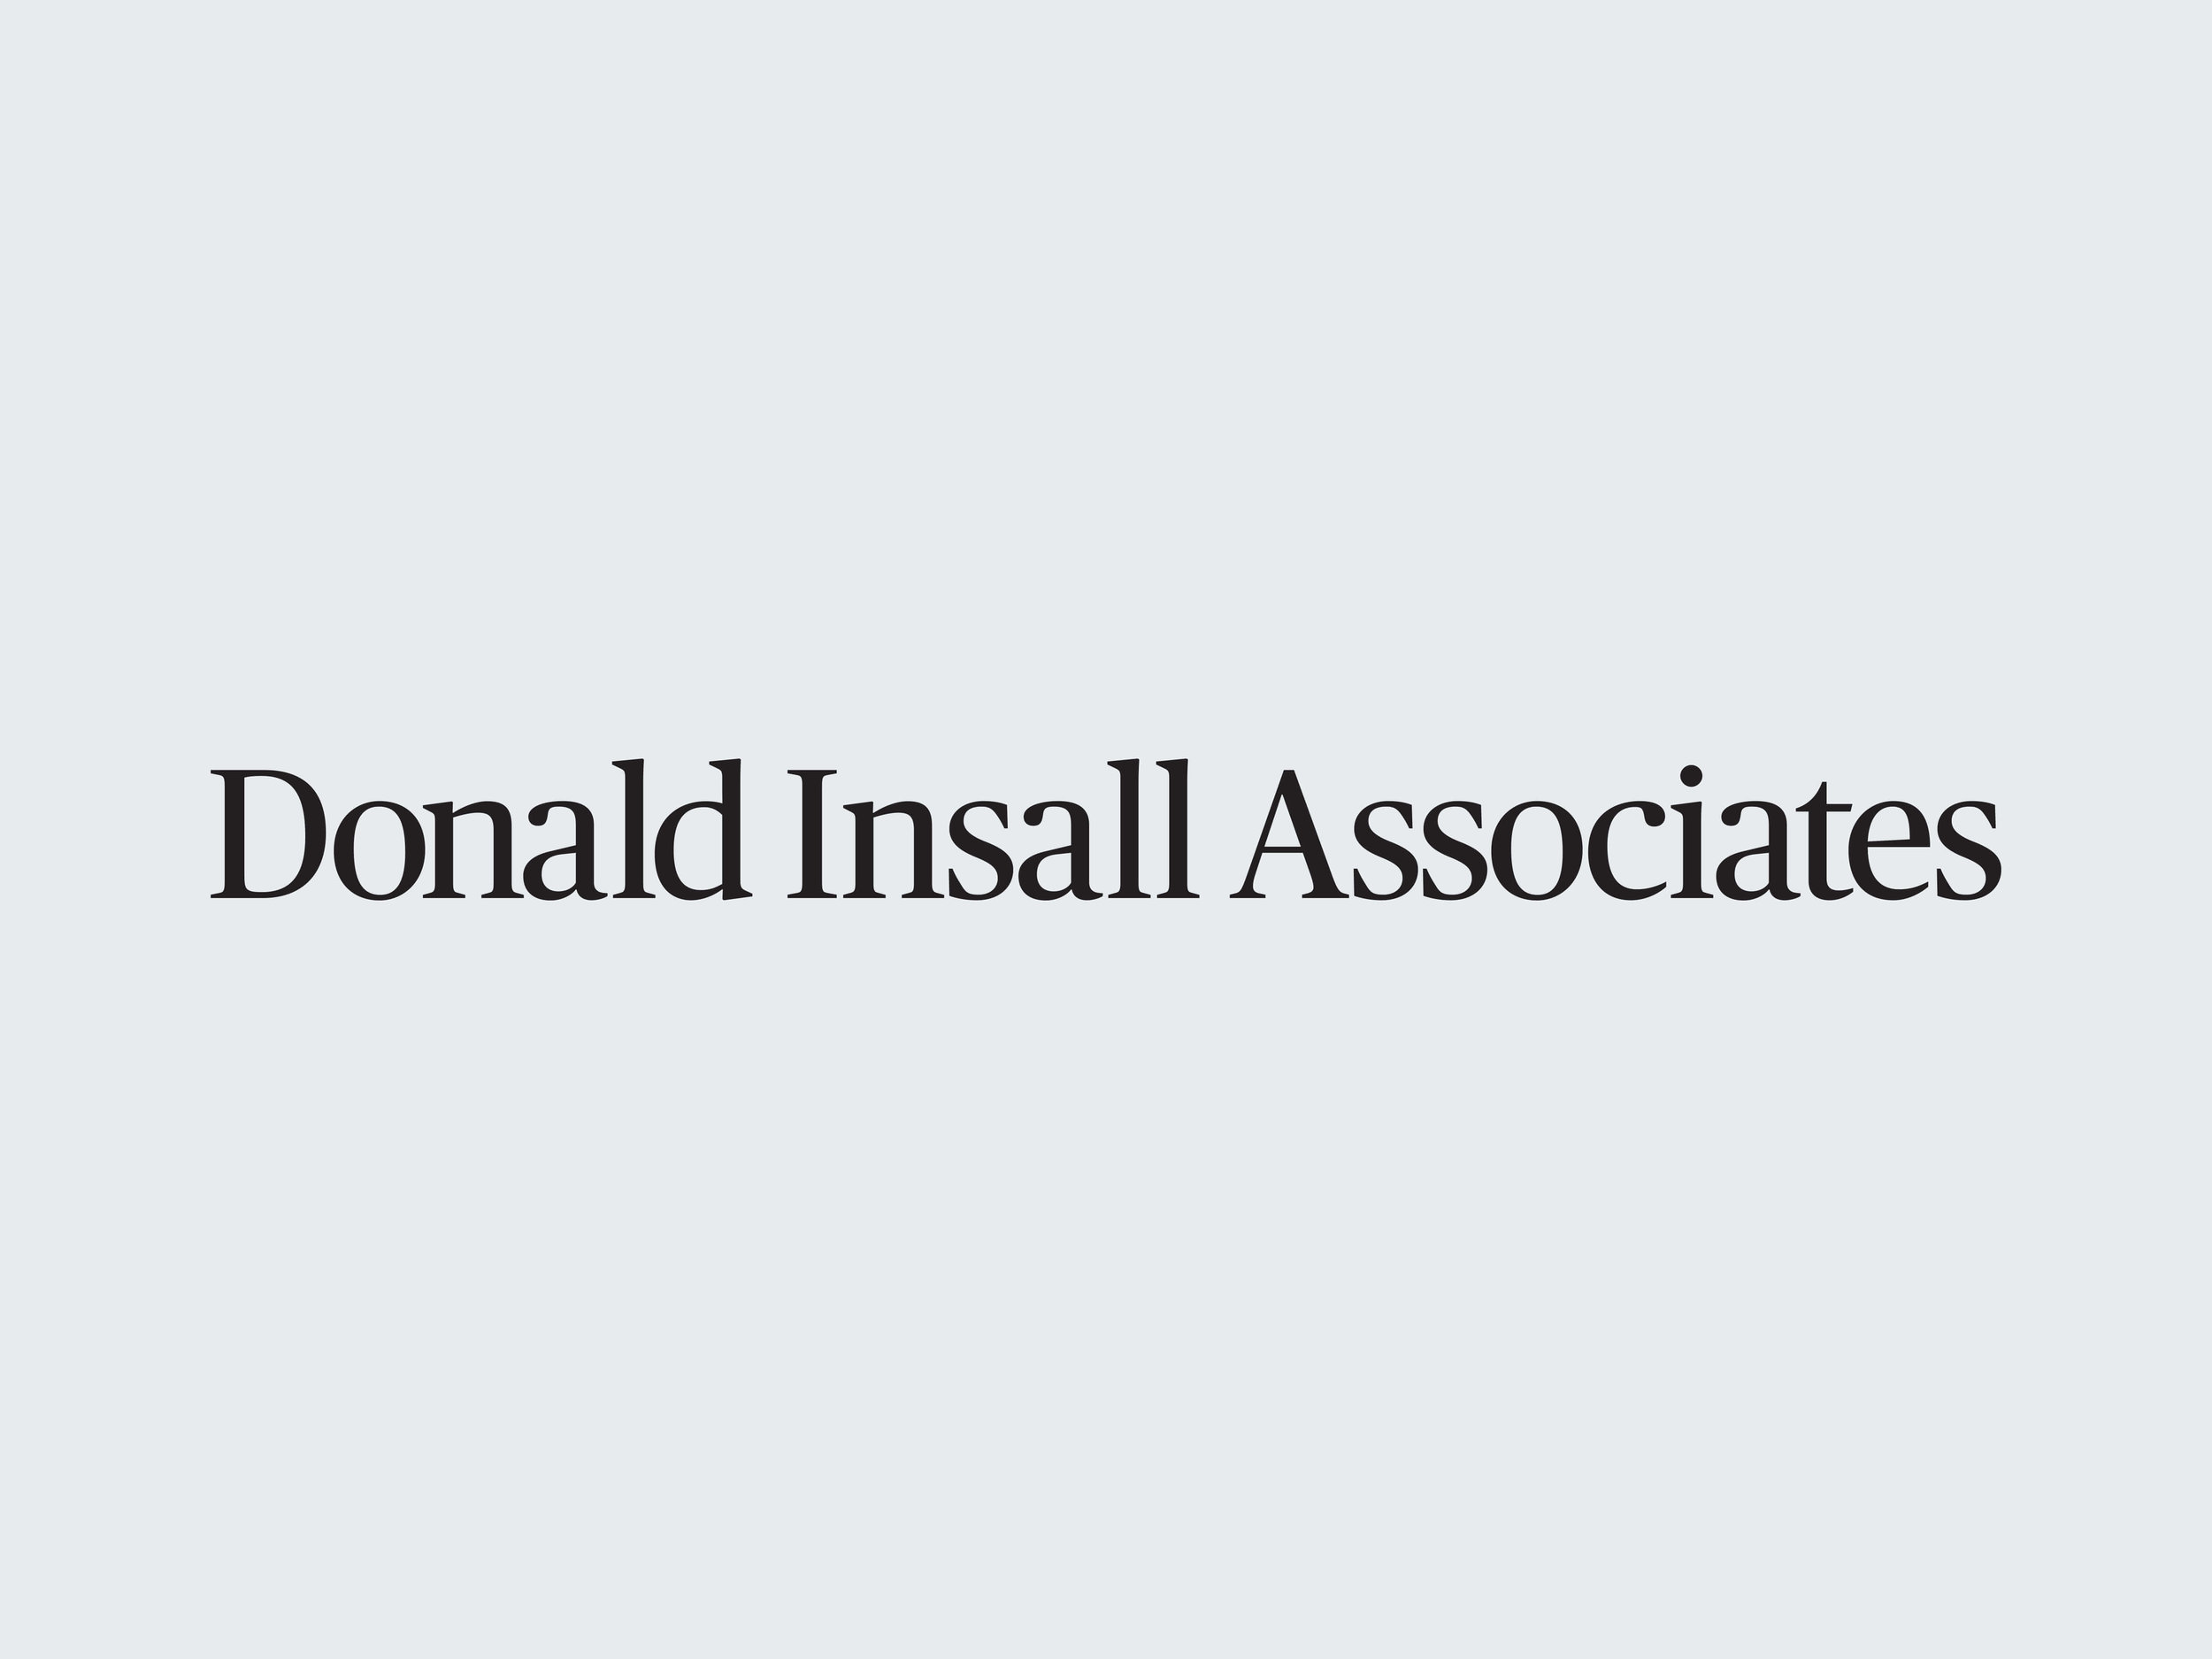 Donald-Insall-associates.jpg